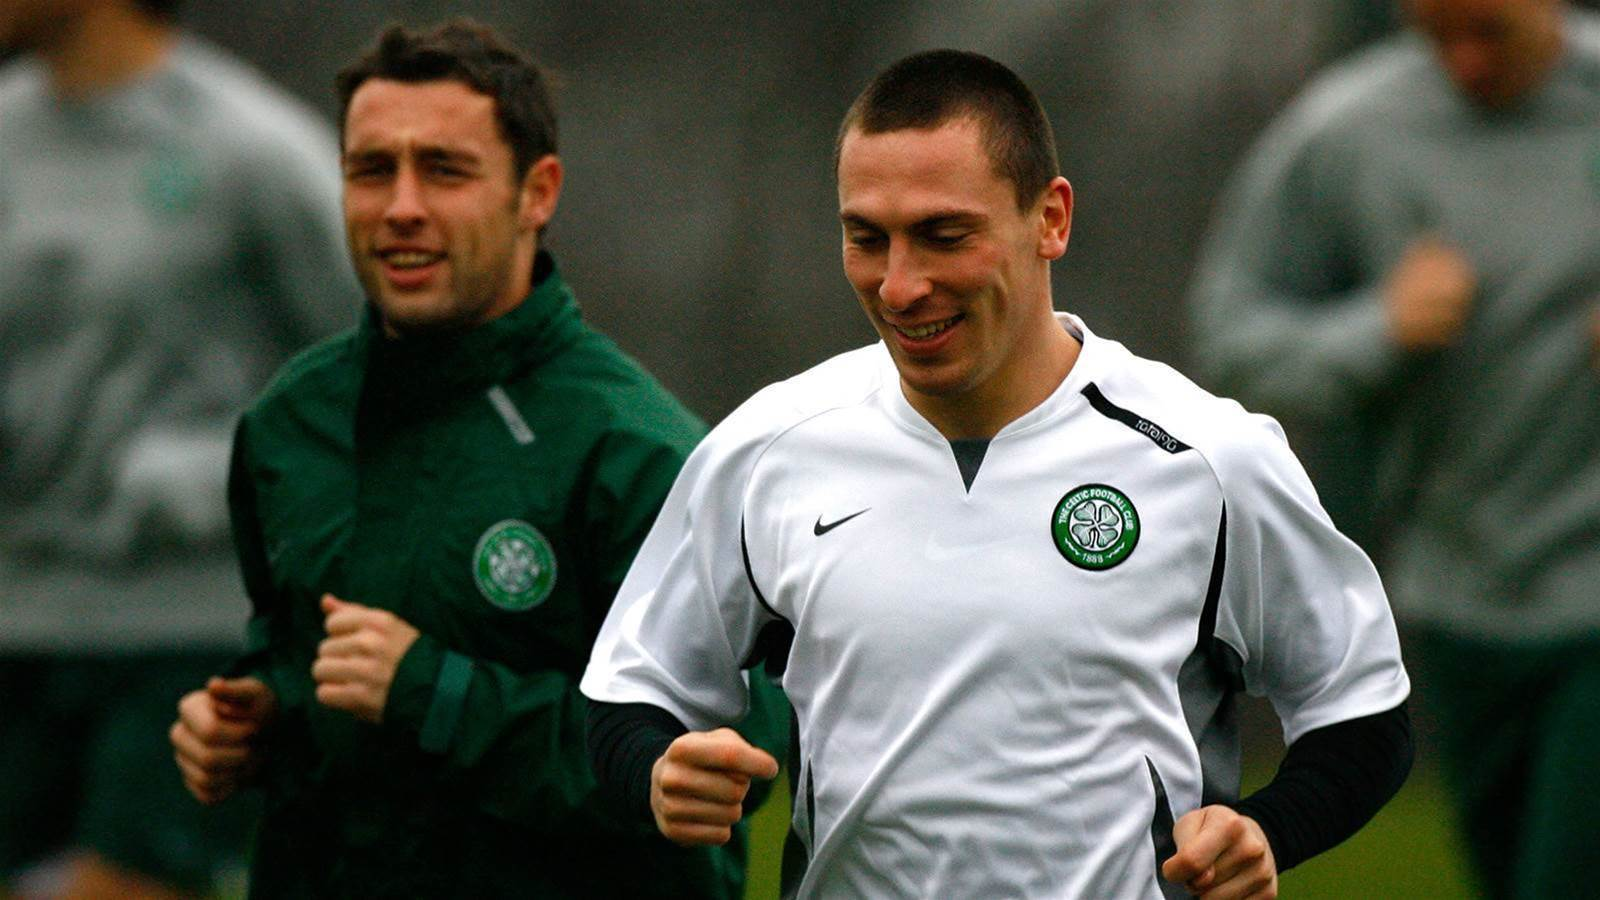 Aussie Celtic ace's U-turn on Scott Brown move